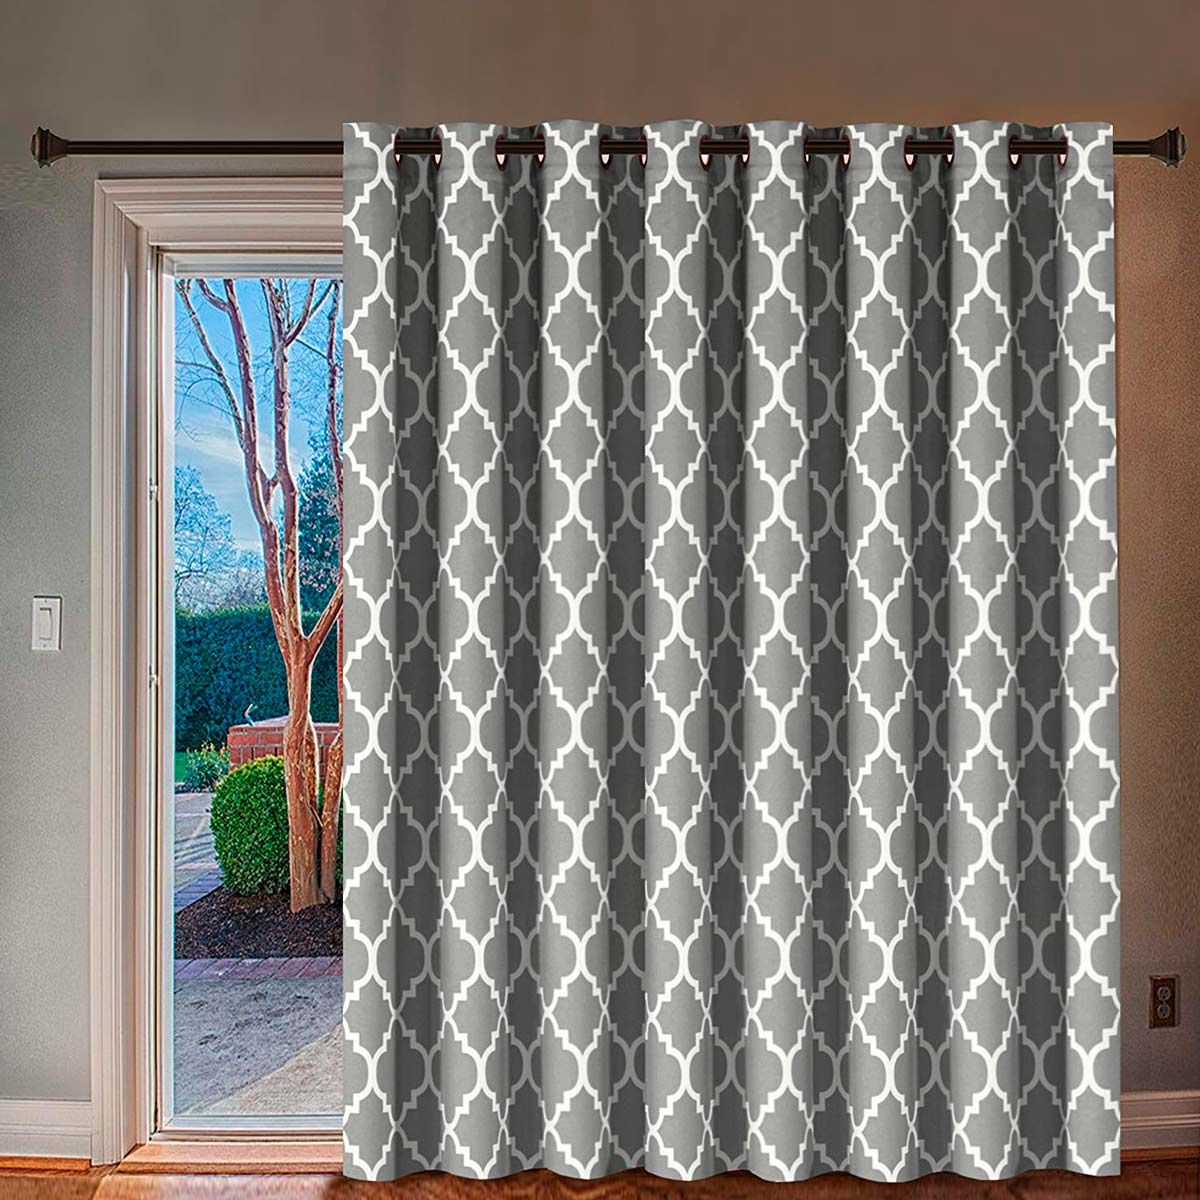 Patio Door Curtain Ideas For Different Needs And Tastes With